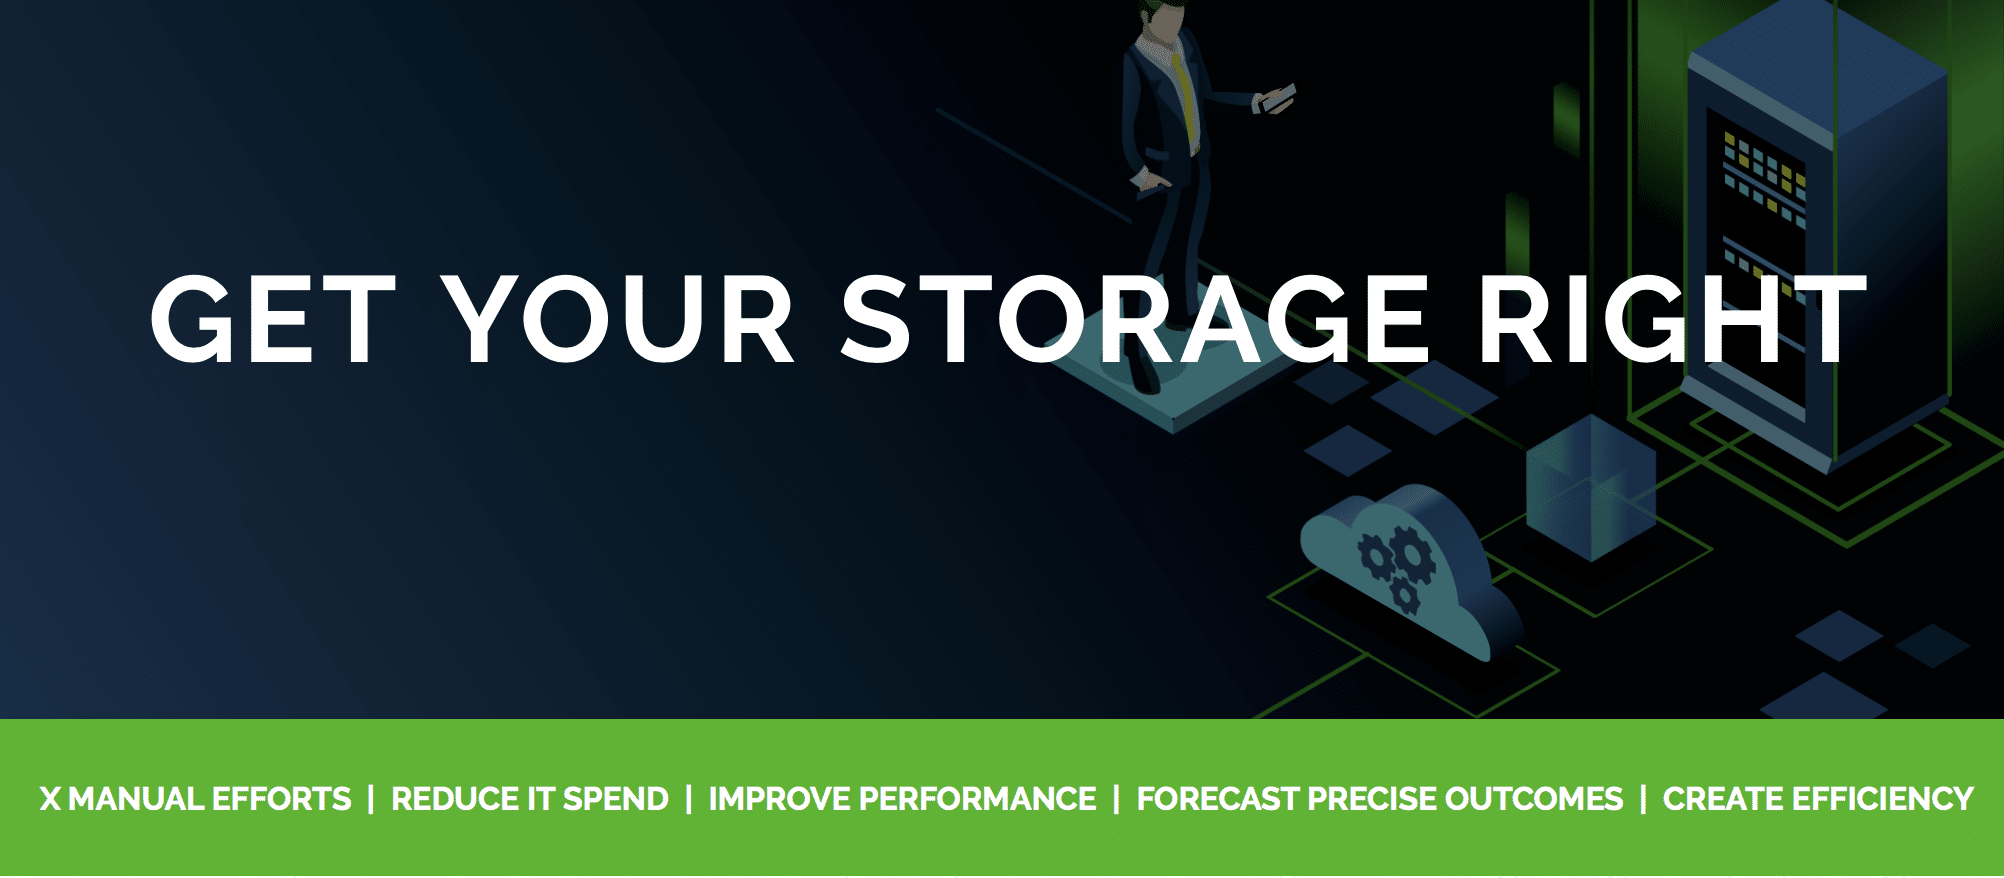 GET YOUR STORAGE RIGHT